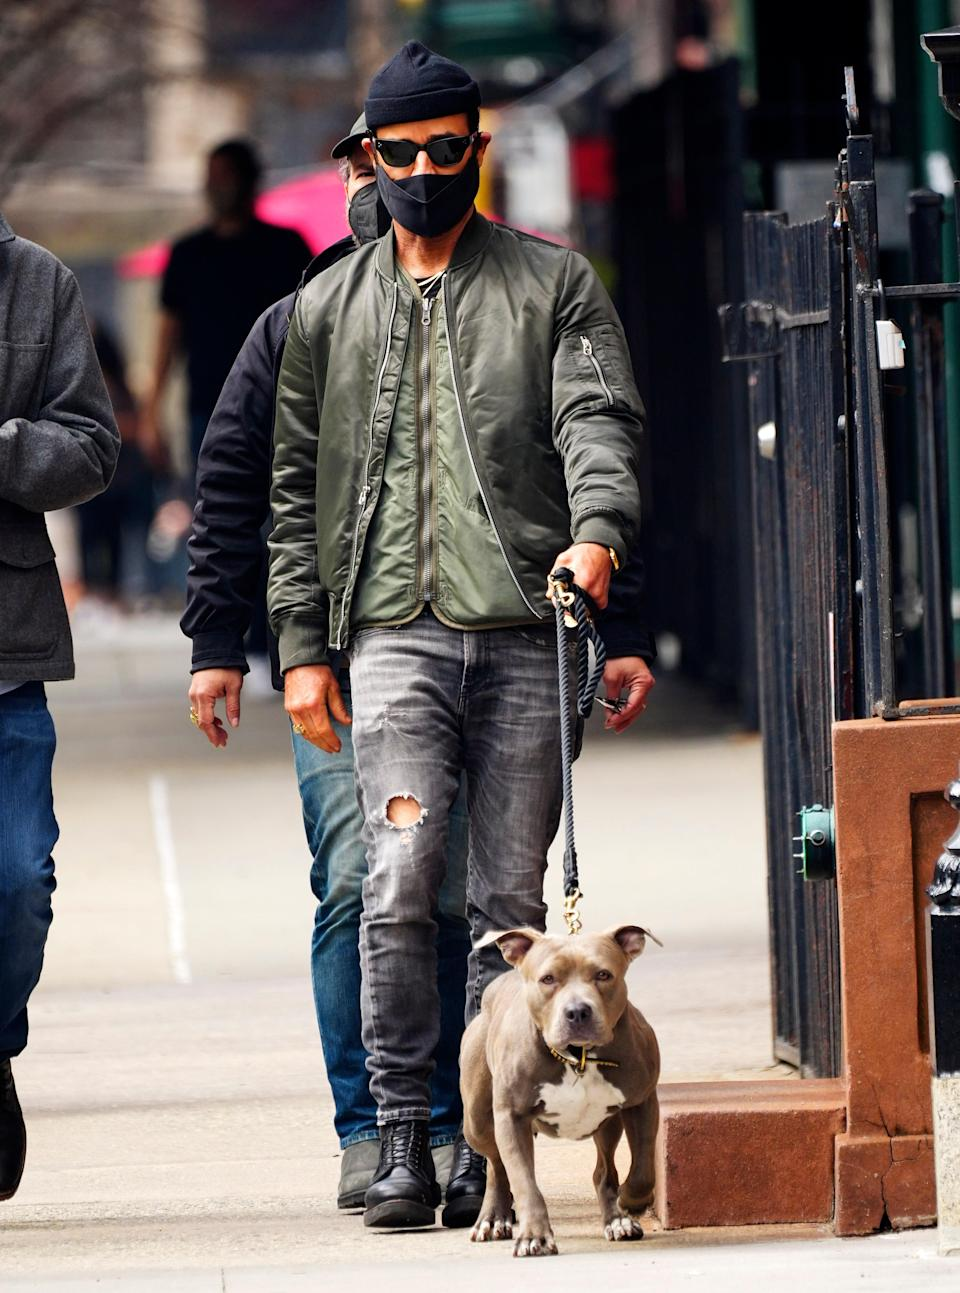 NEW YORK, NEW YORK - MARCH 25: Justin Theroux takes his dog Kuma on a walk in March 25, 2021 in New York City. (Photo by Gotham/GC Images)